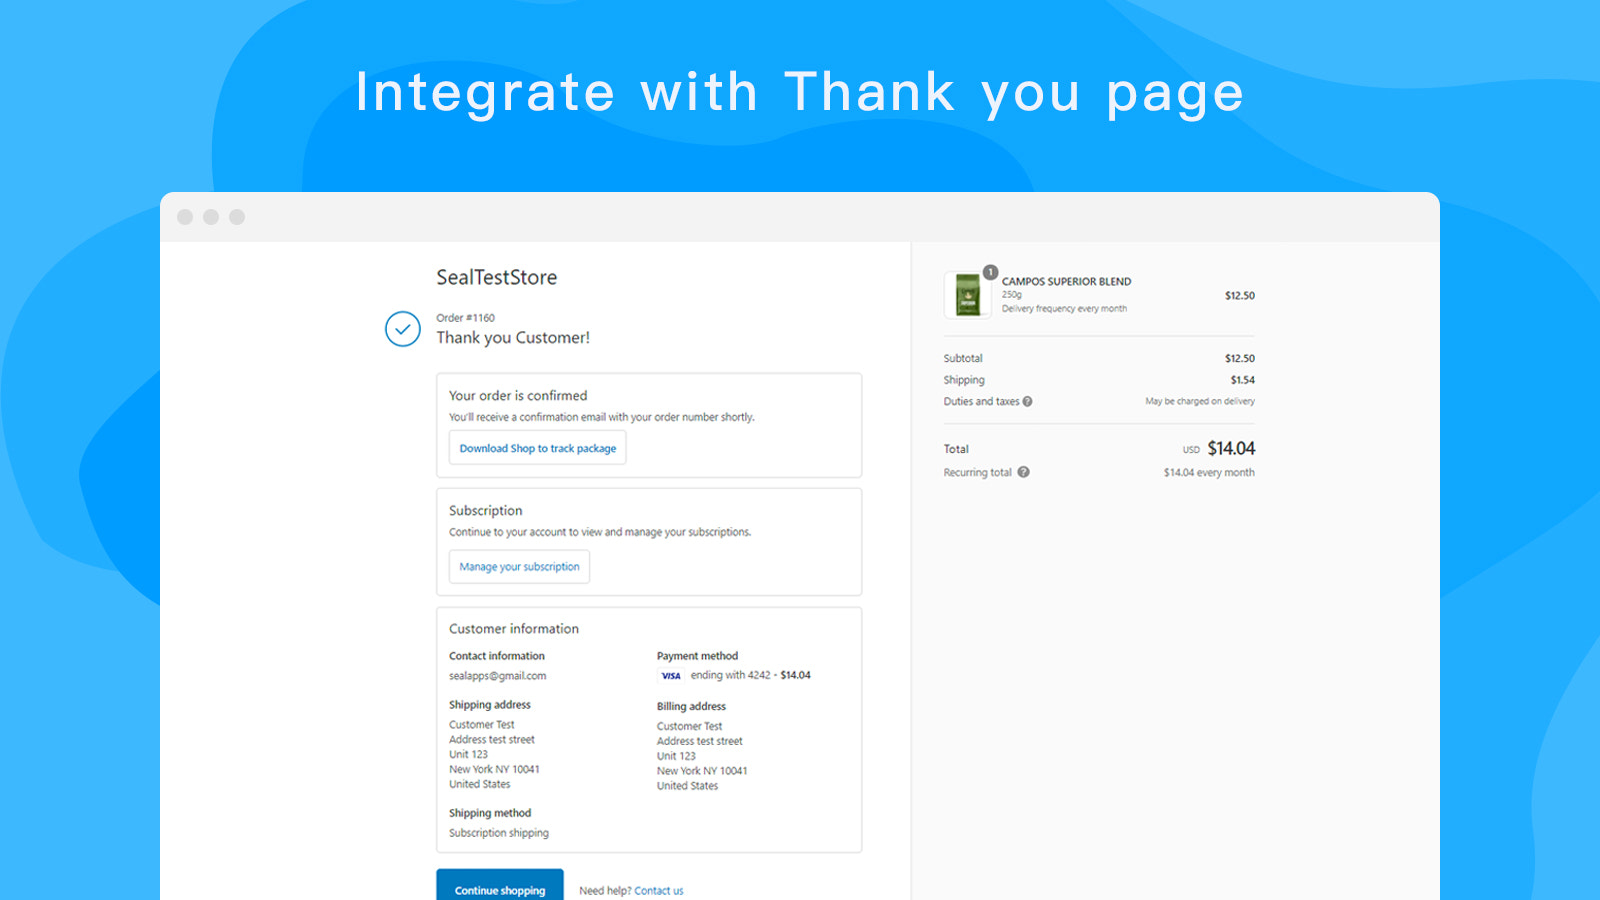 Integrate with Thank you page